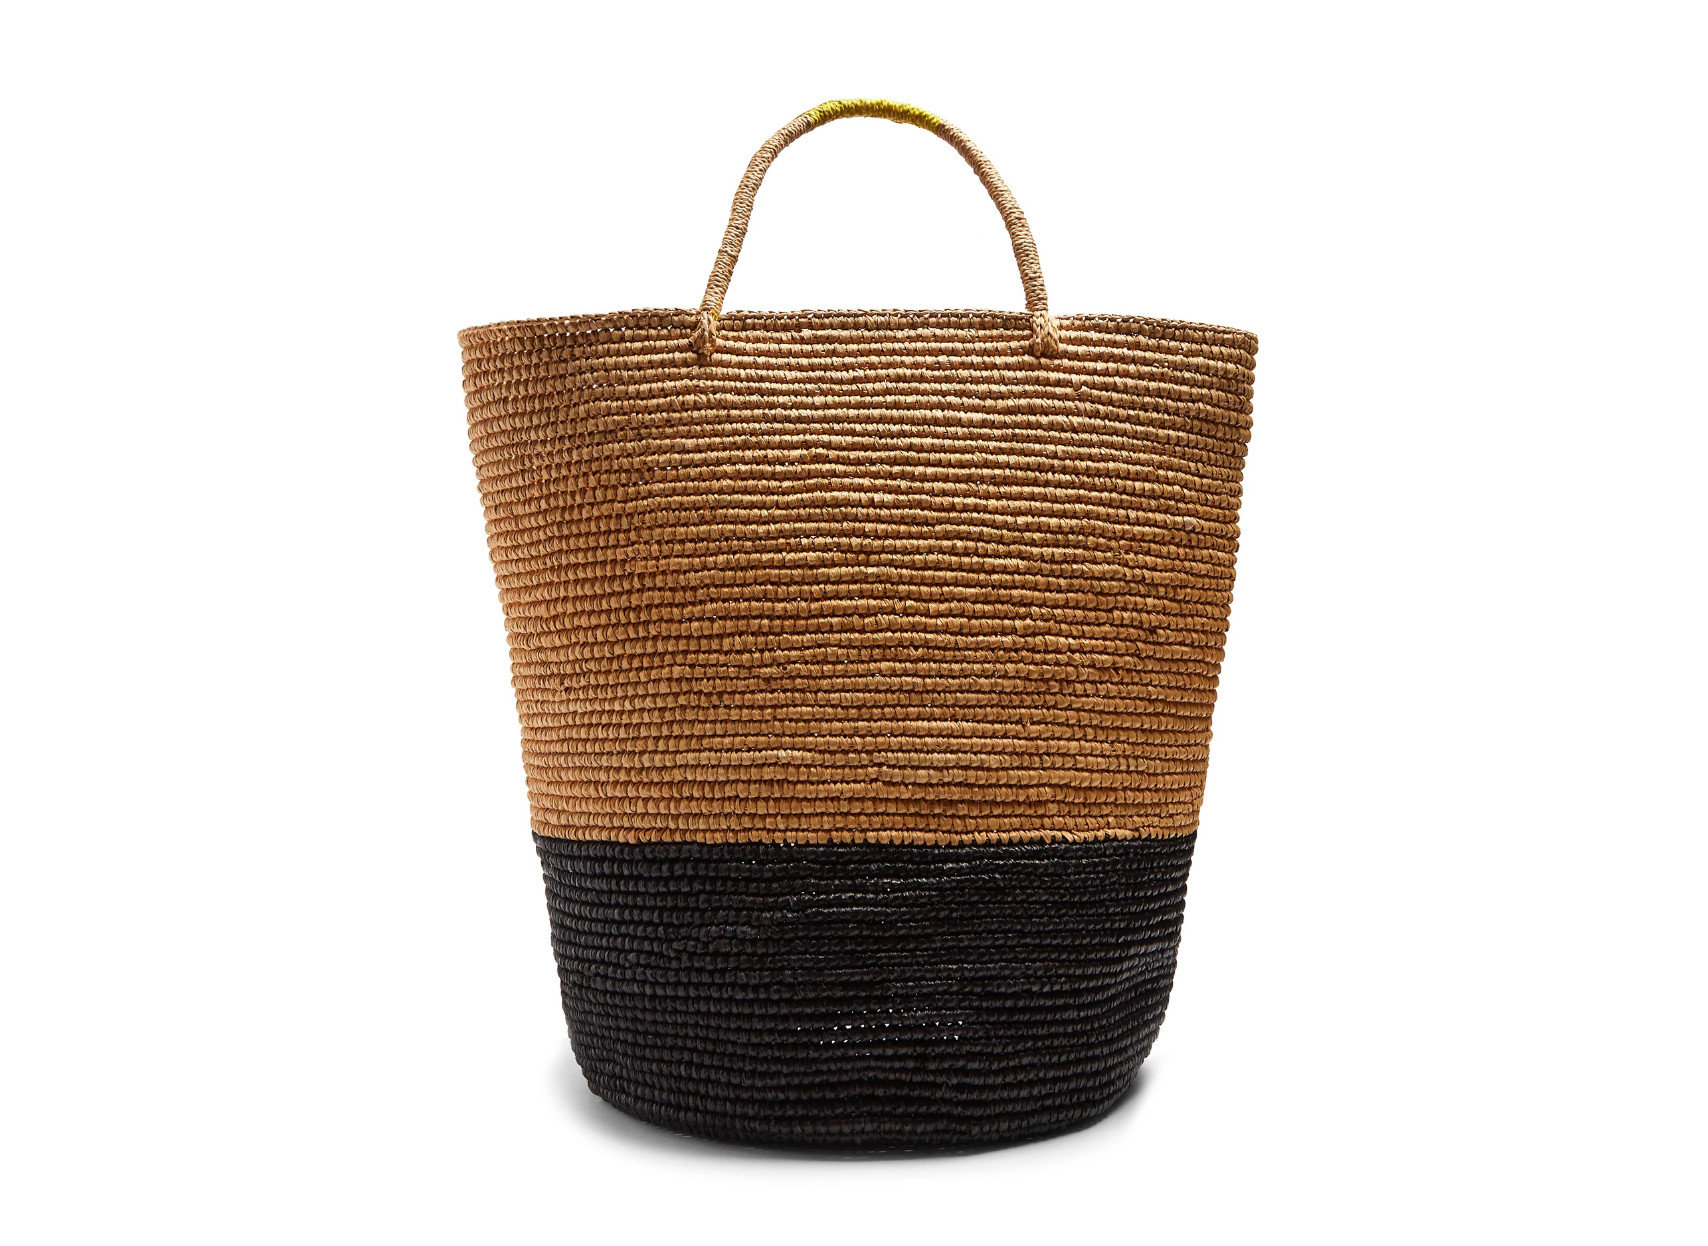 Style + Design Travel Shop basket container wicker product storage basket product design